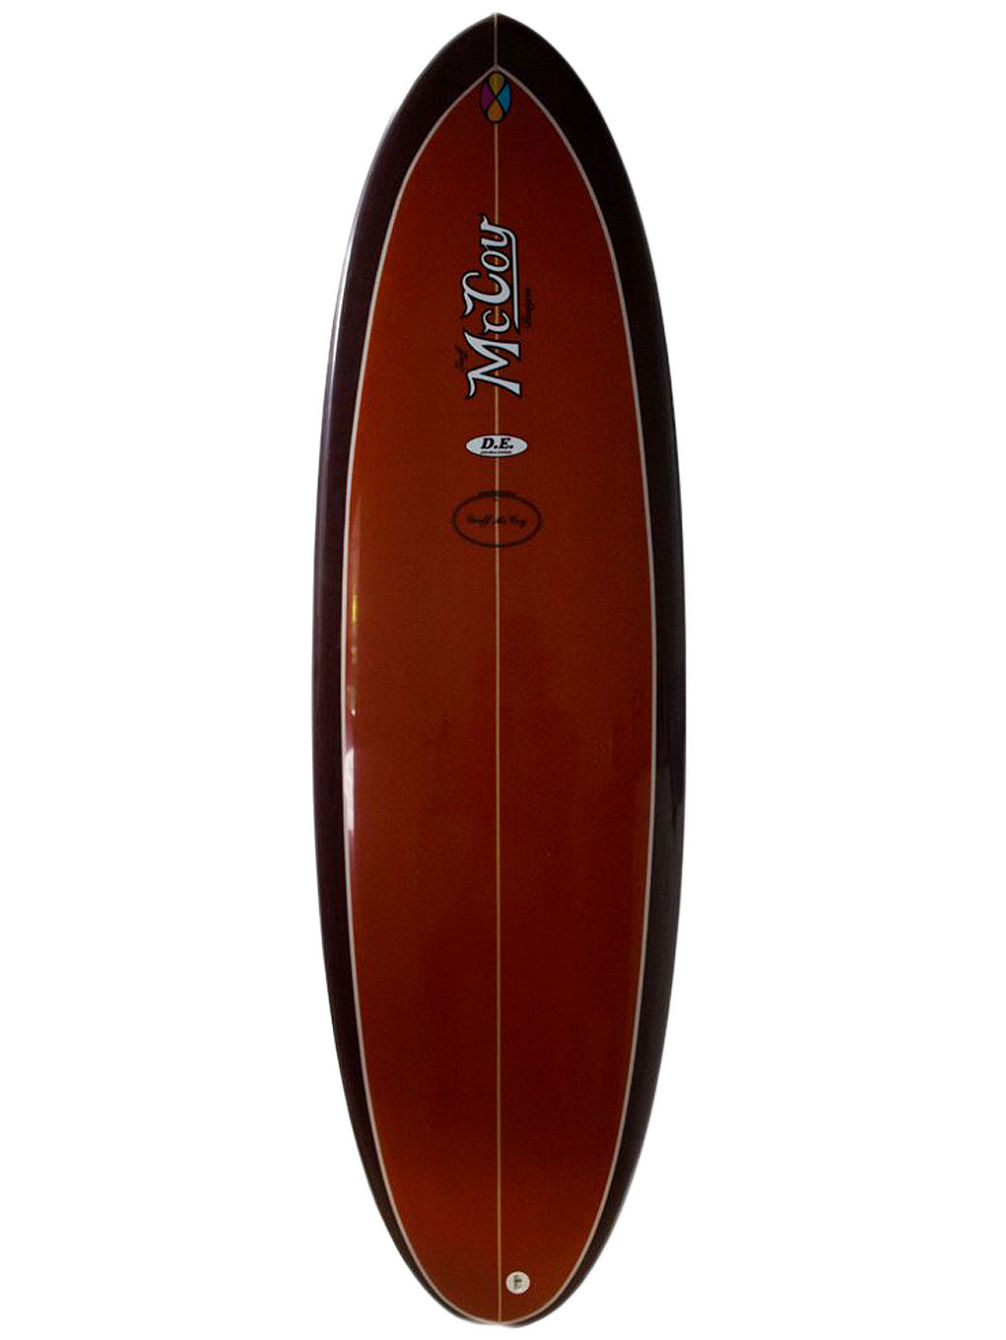 Double Ender 6.4 XF brown Surfboard